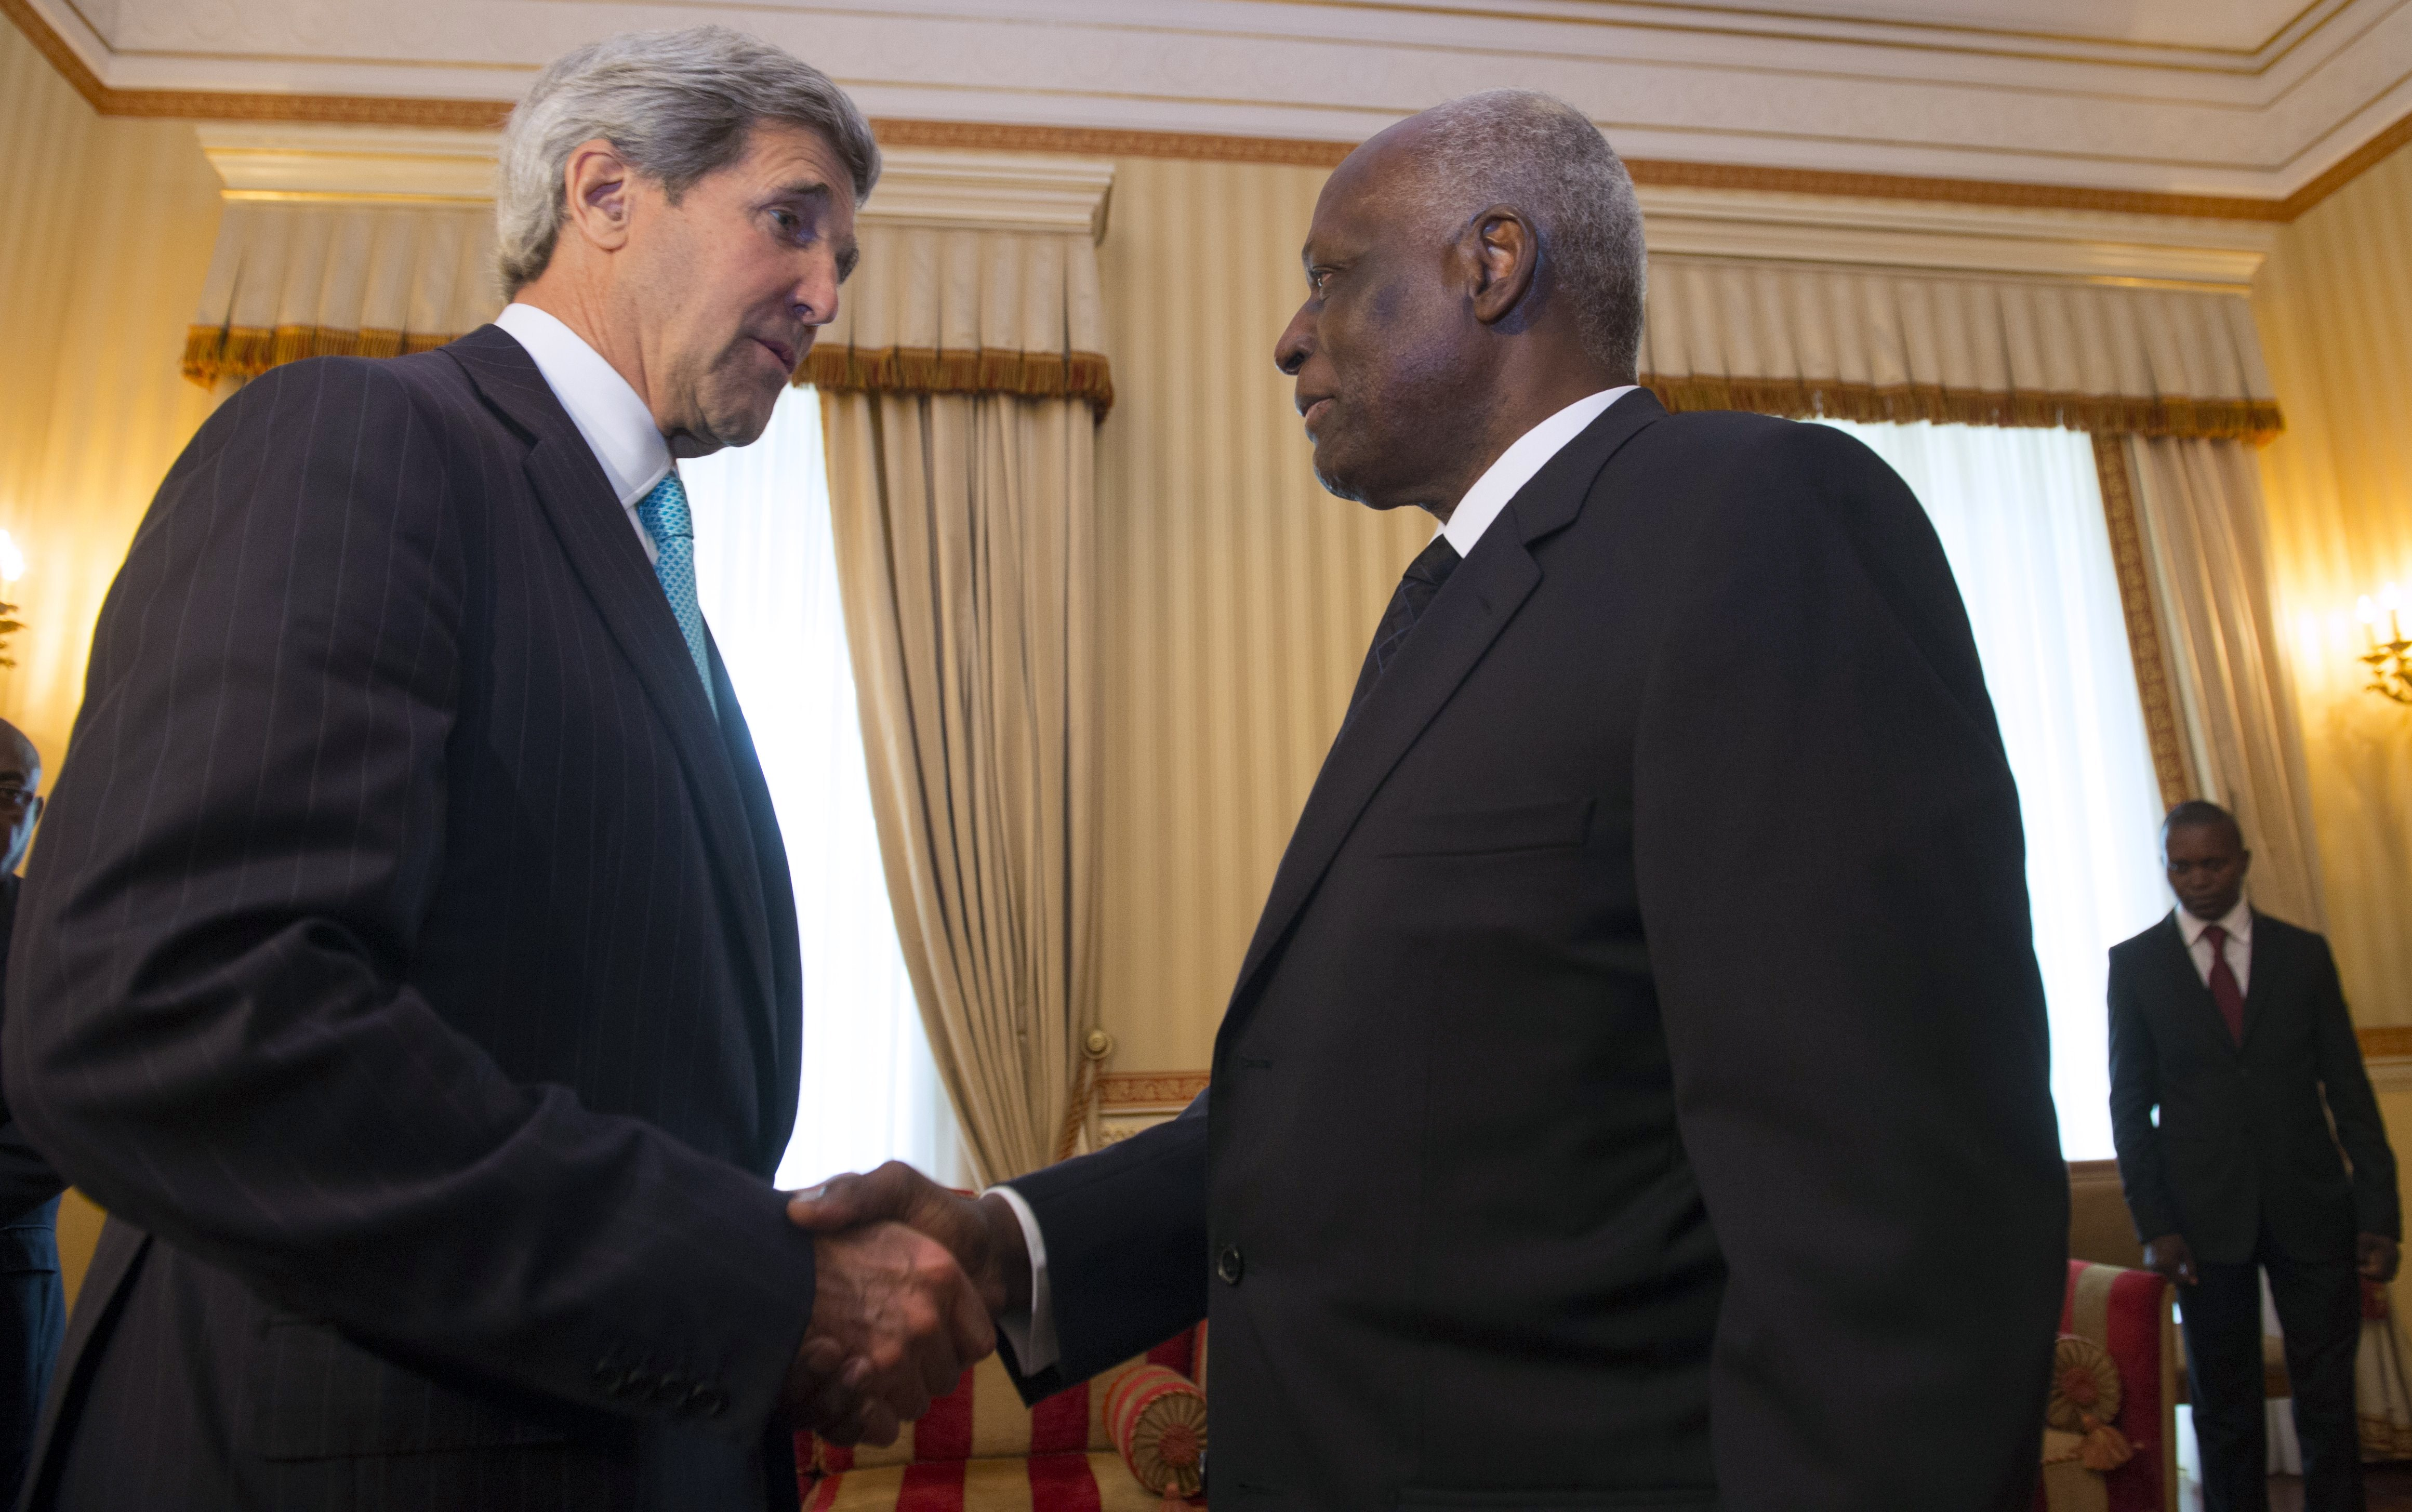 Angolan President Jose Eduardo dos Santos shakes hands with US Secretary of State John Kerry on May 5, 2014. SAUL LOEB/AFP/Getty Images